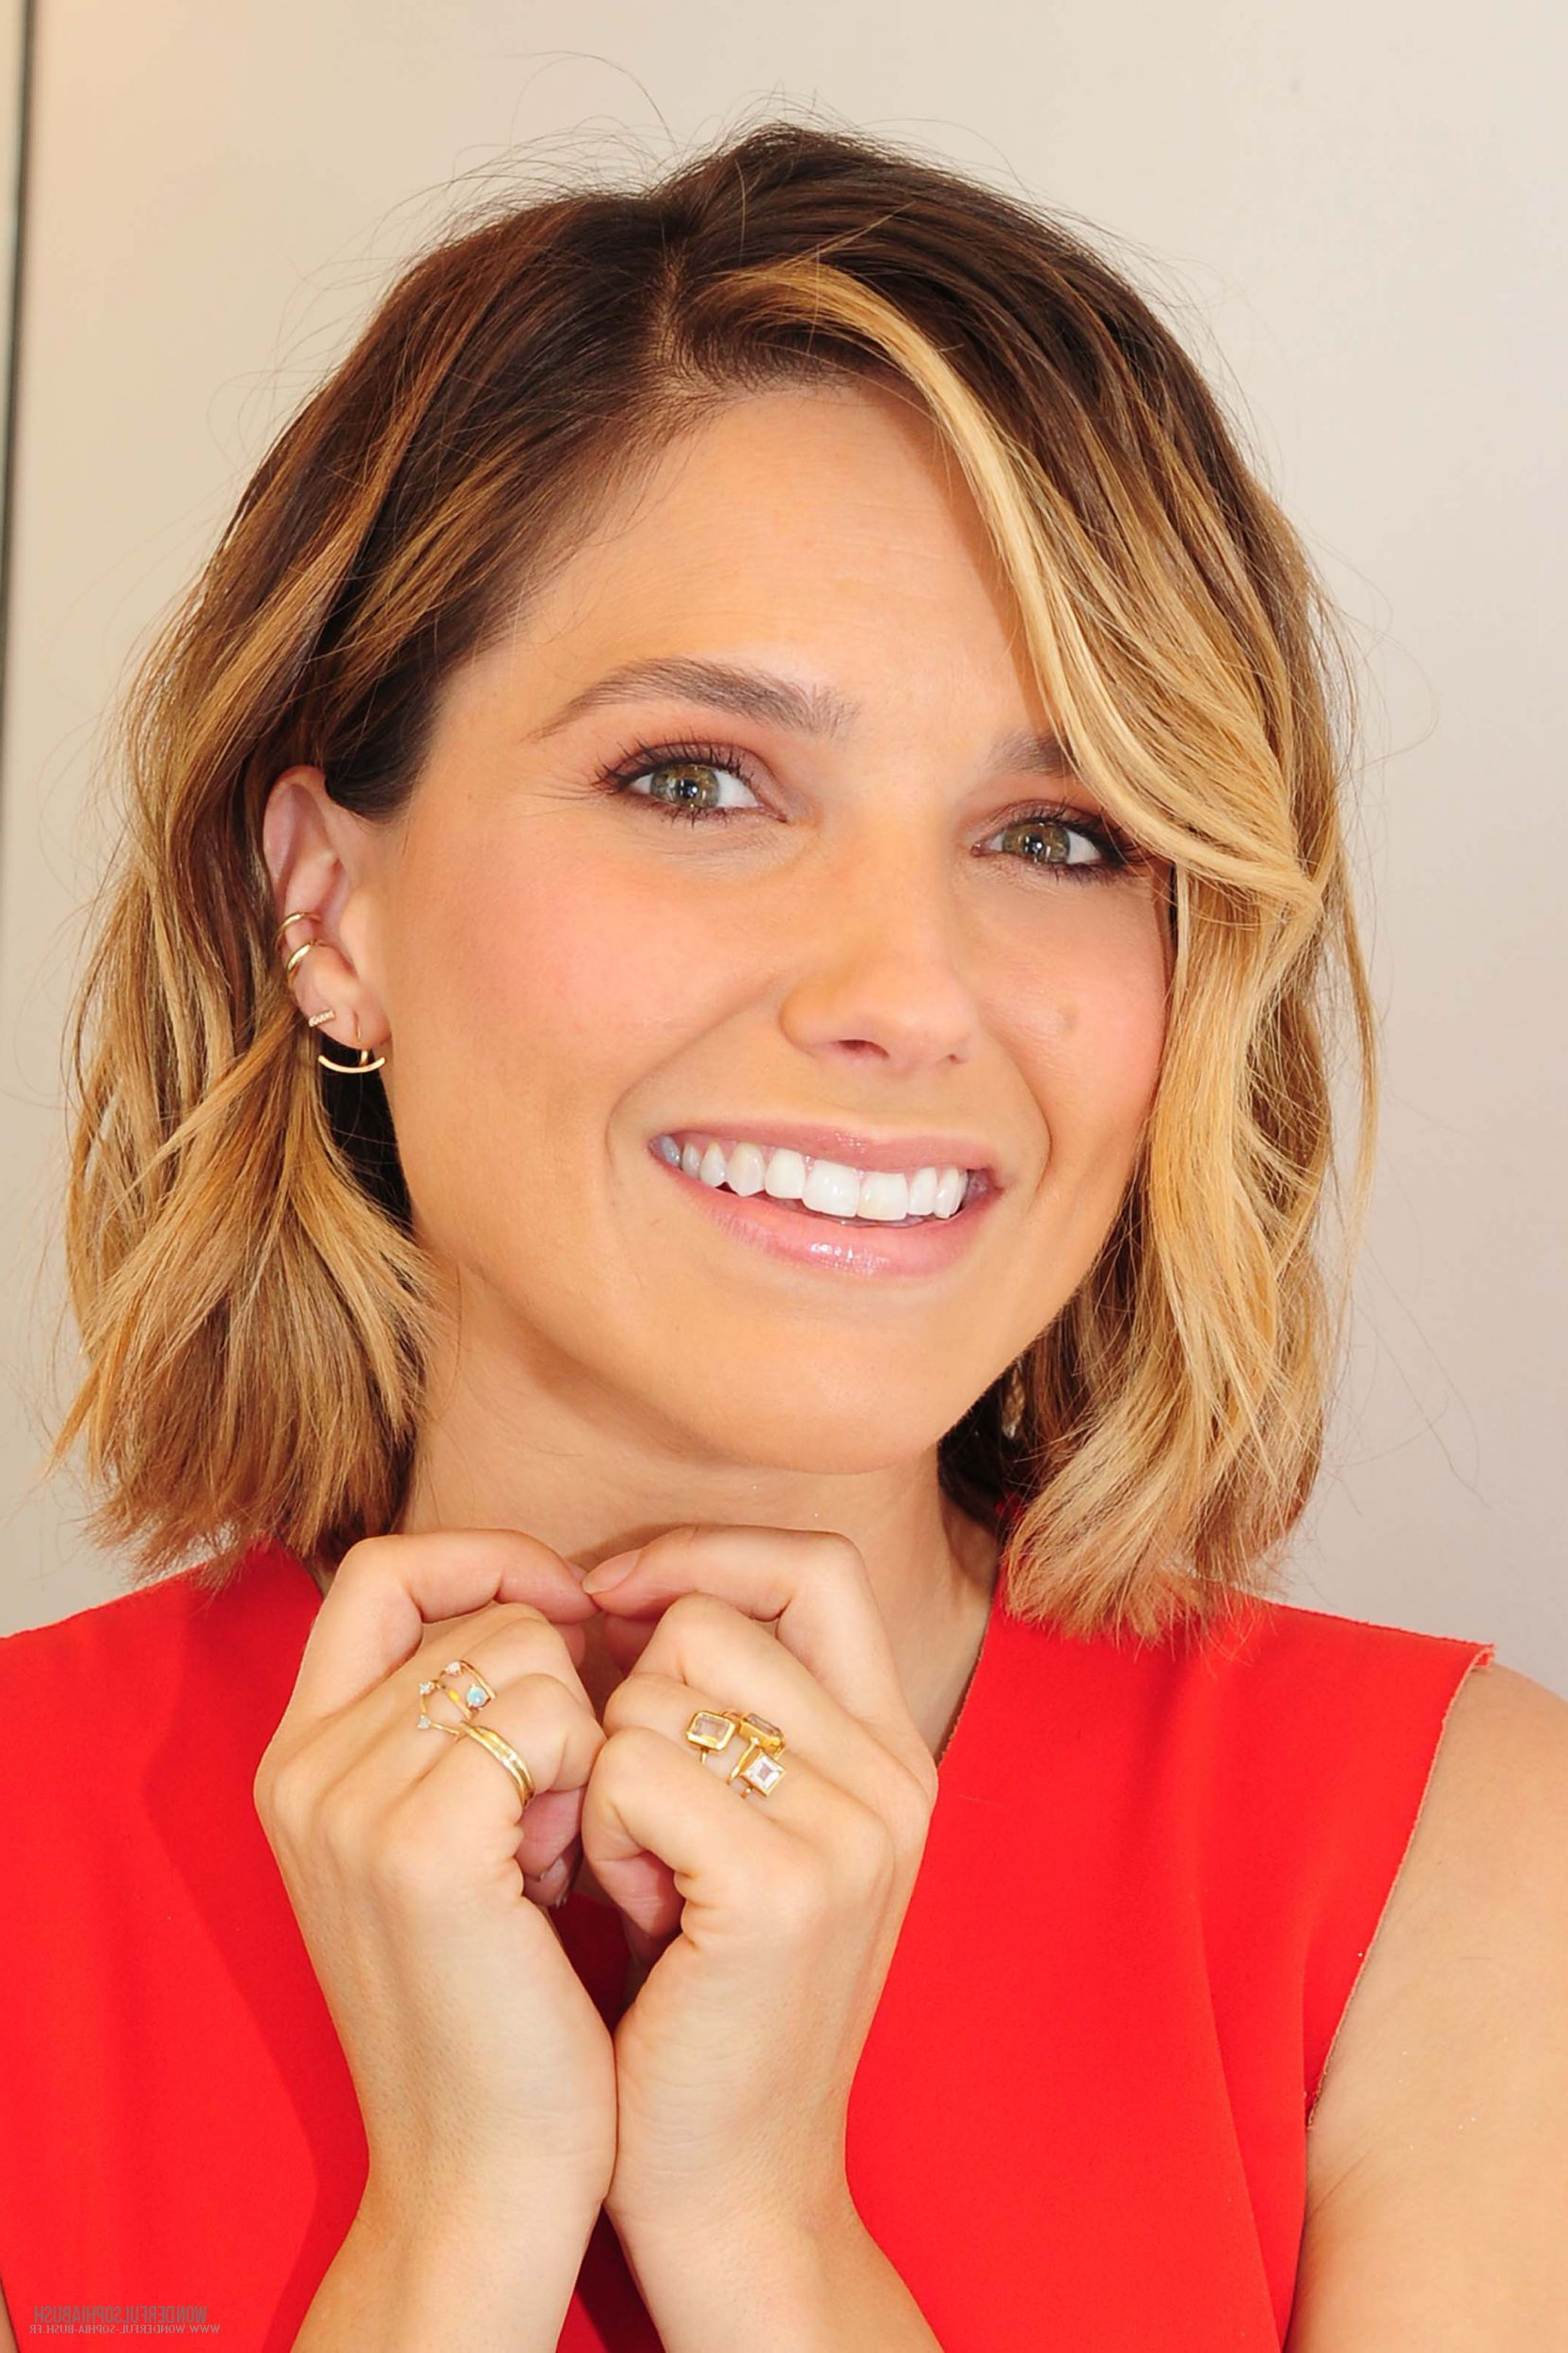 Sophia Bush Nbc Studios 014 Cliquer Sur L'image Pour Fermer Regarding Sophia Bush Short Hairstyles (View 24 of 25)